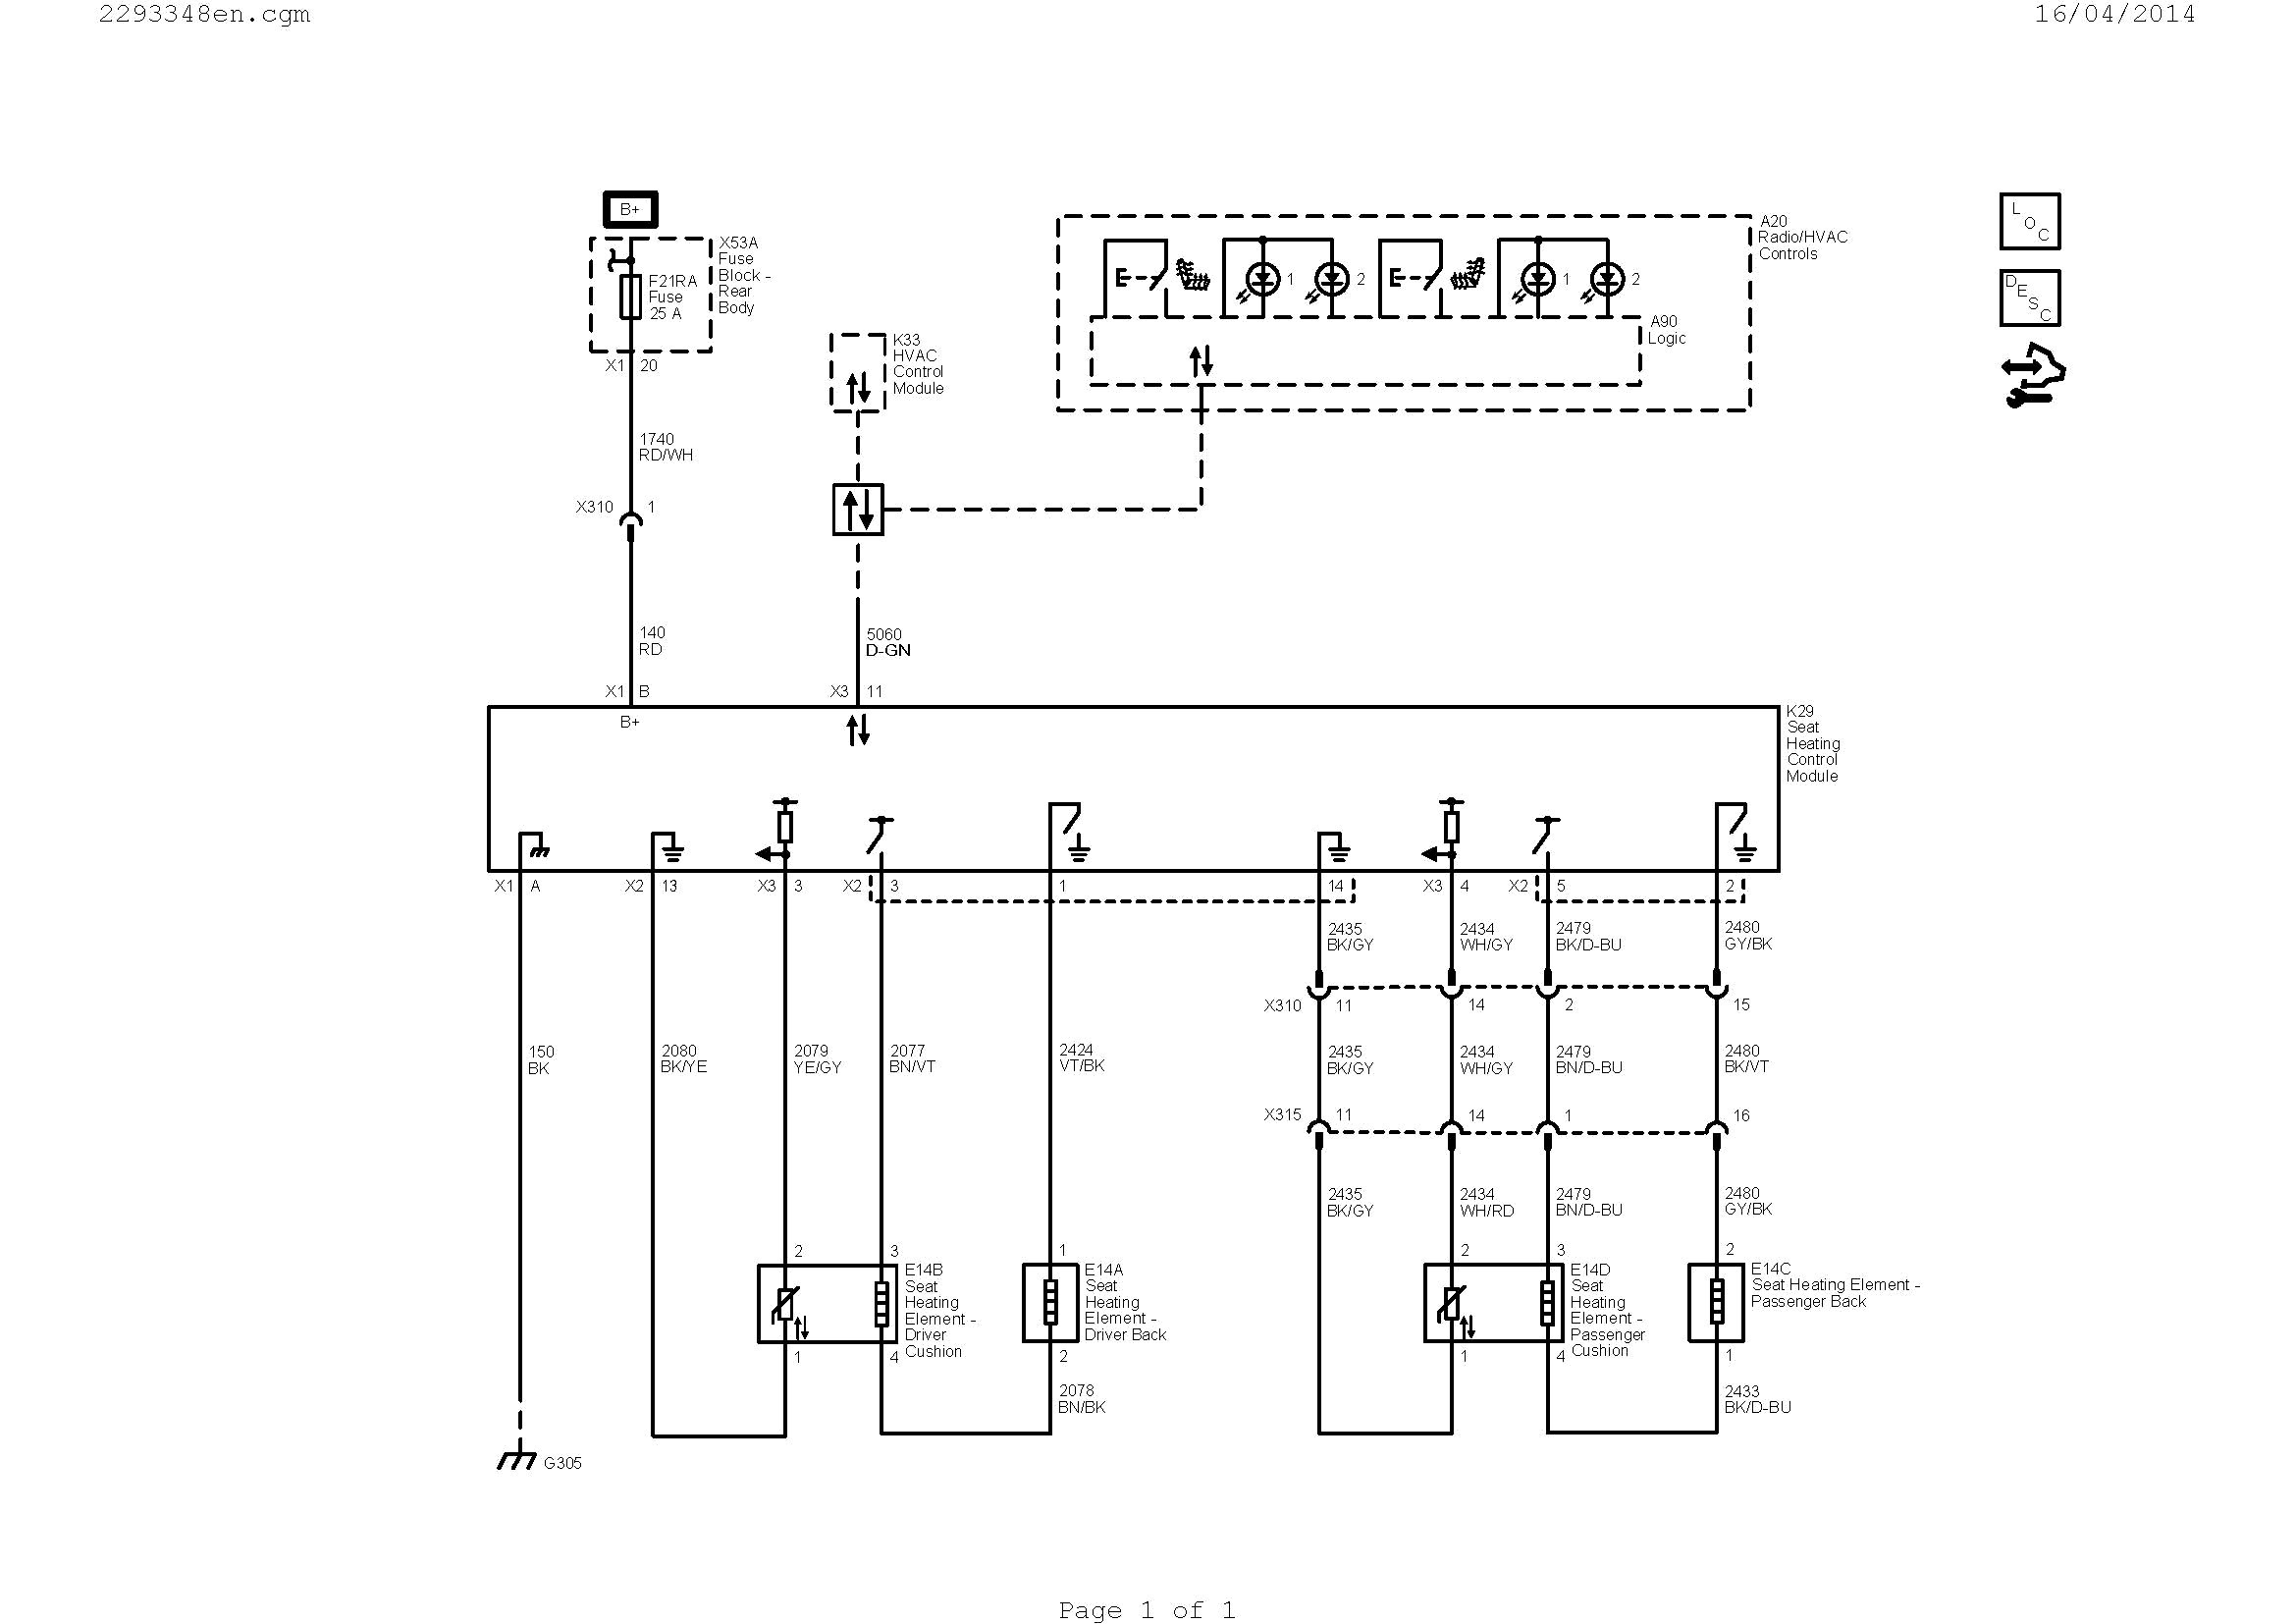 fbp 1 40x wiring diagram Download-Wiring Diagram for Work Light Best Fbp 1 40x Wiring Diagram Pics 3-j